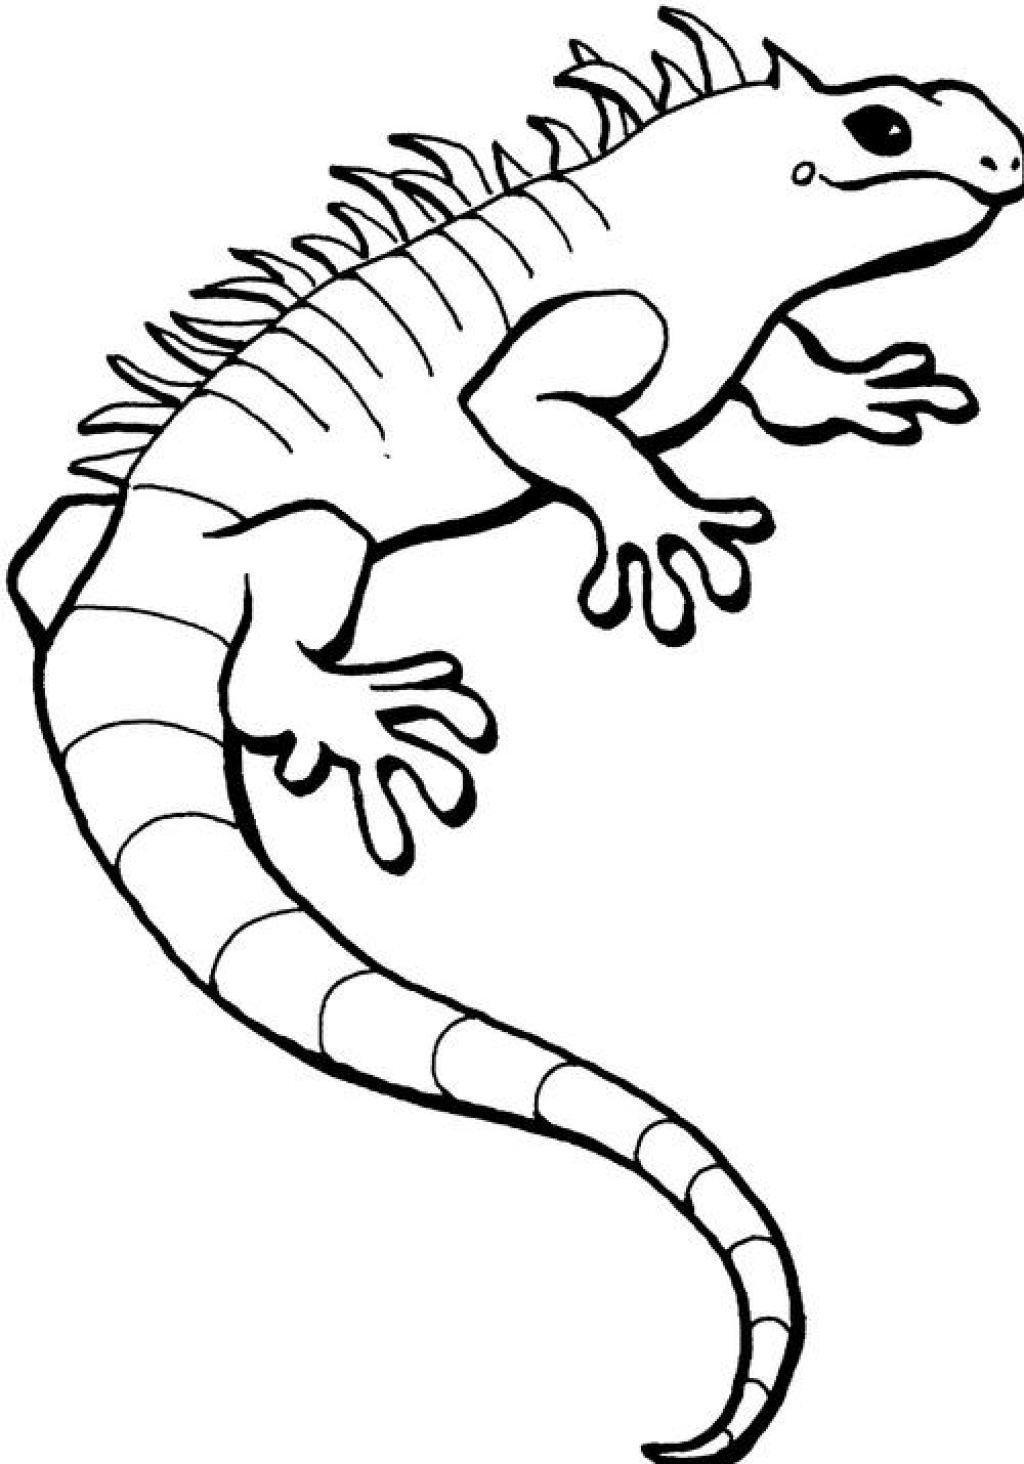 Free printable iguana coloring pages for kids for Lizard coloring pages